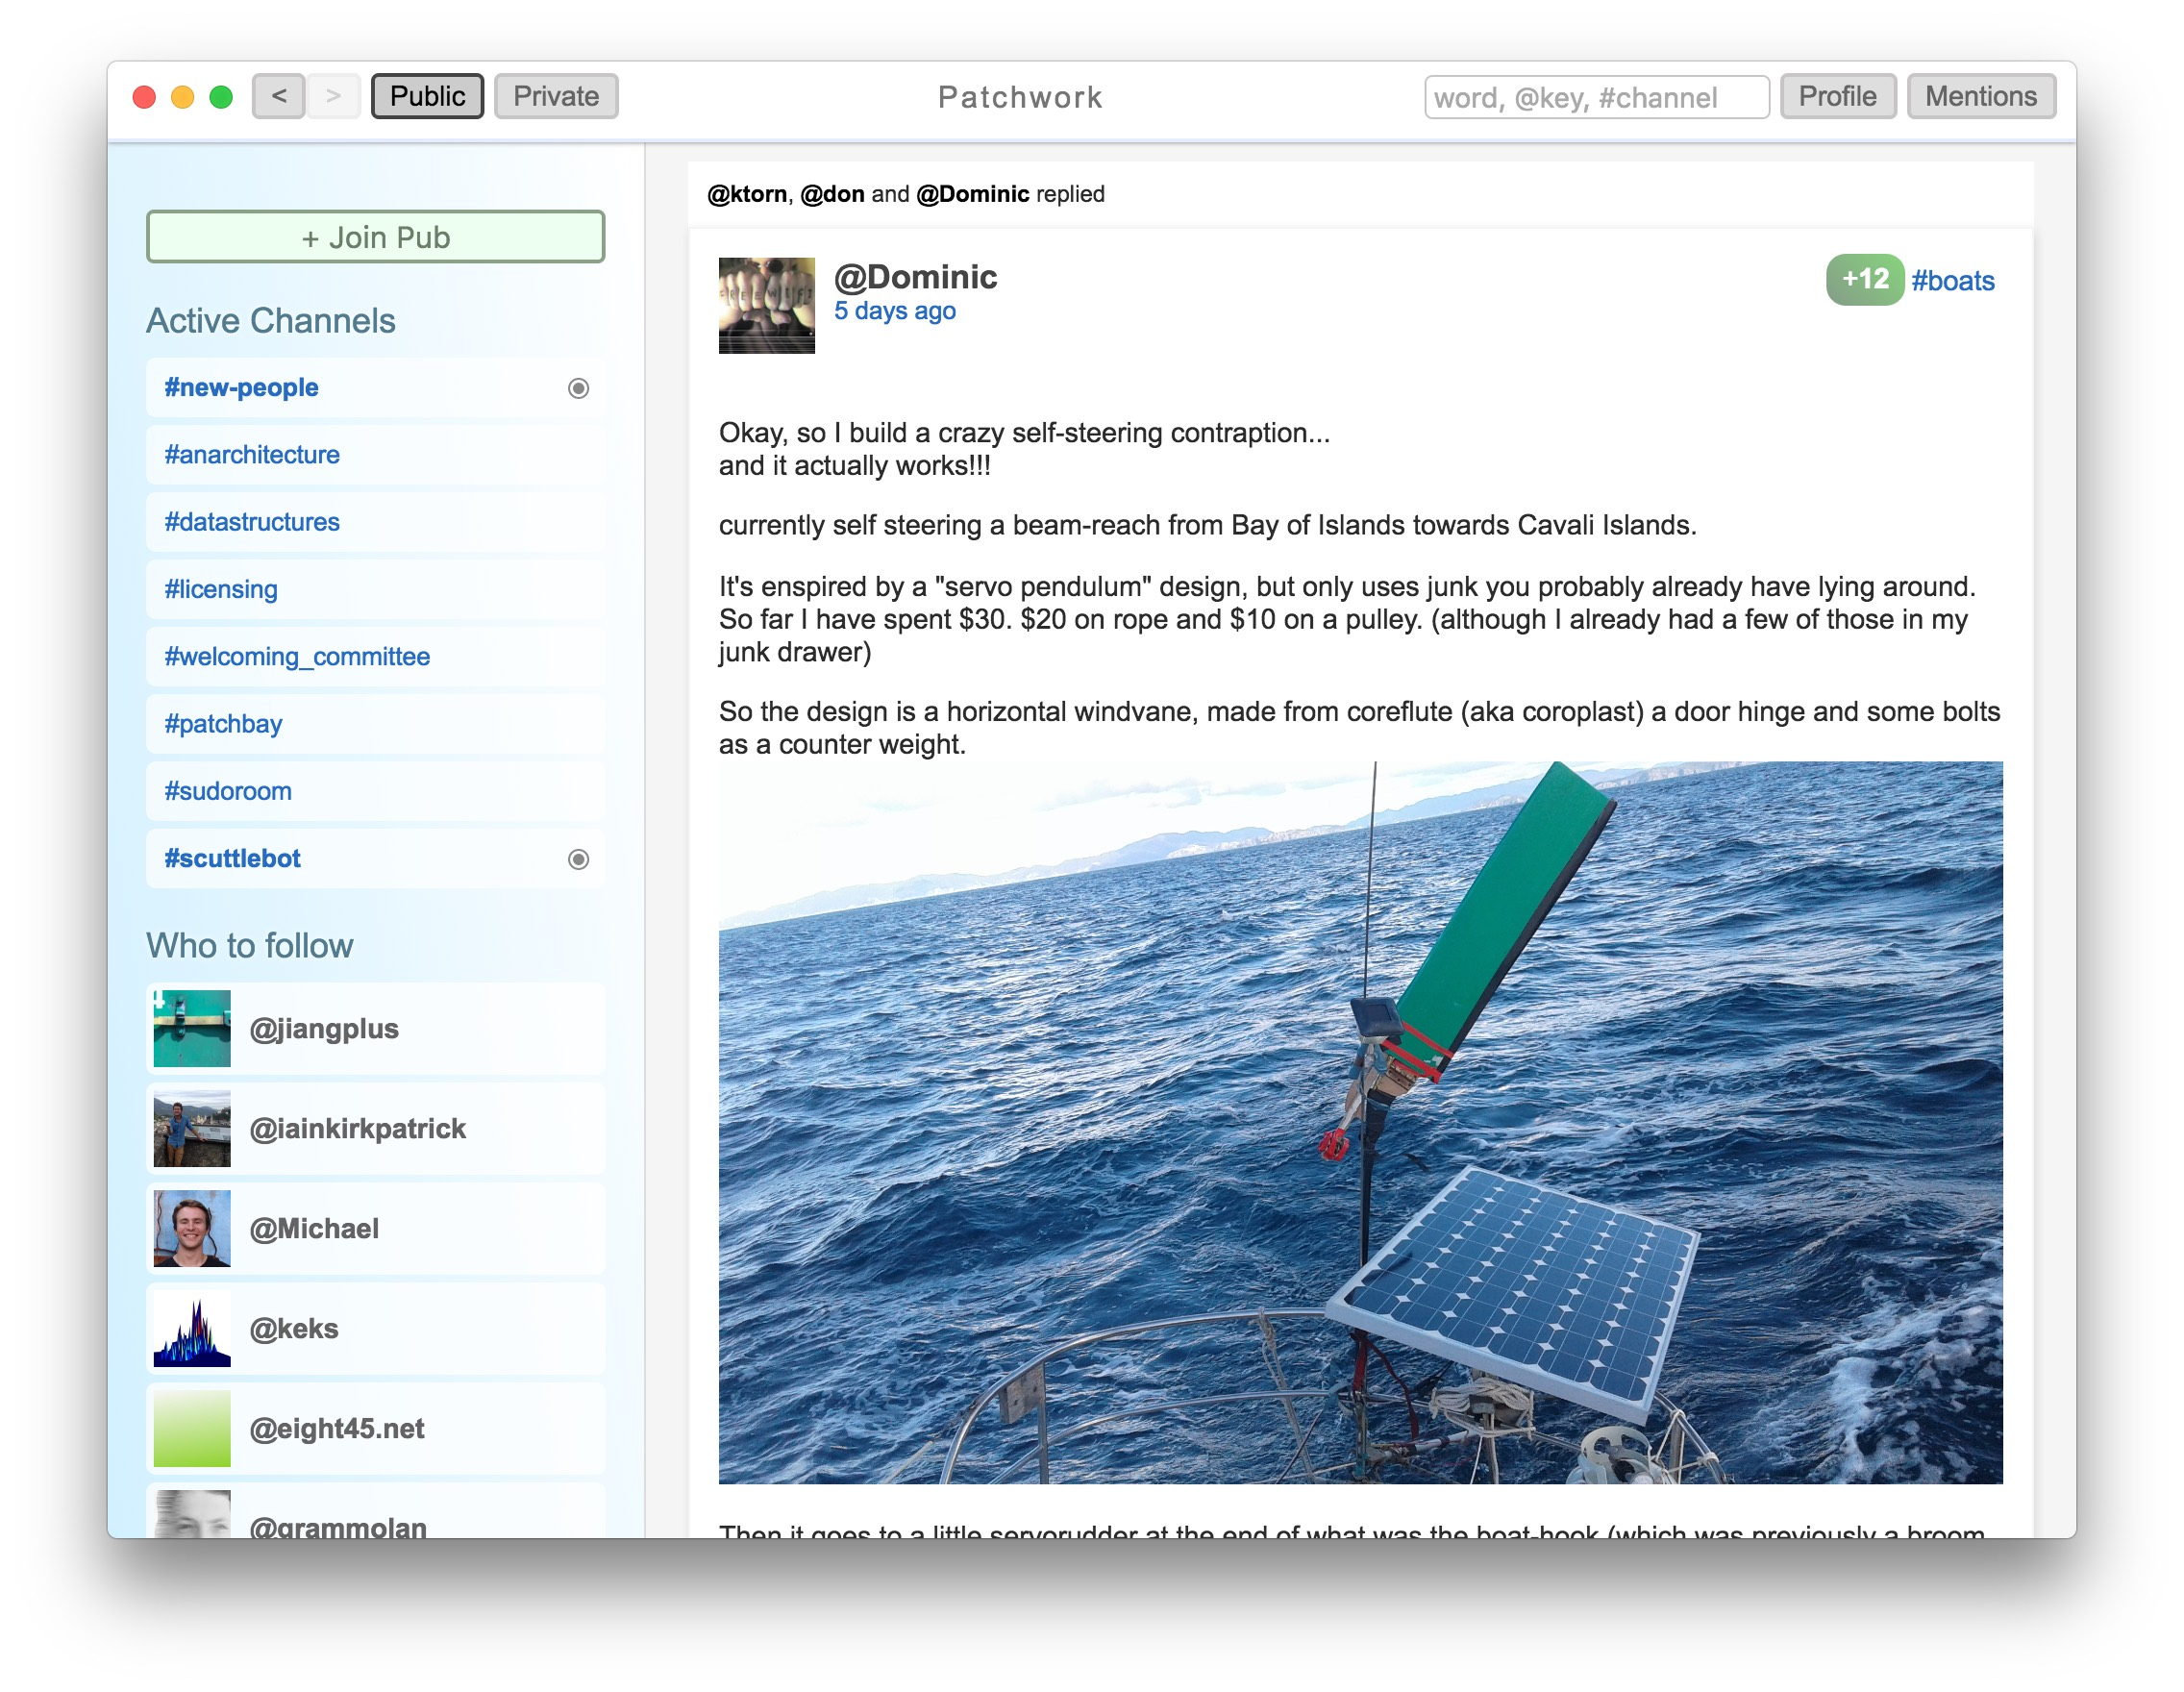 André Staltz - An off-grid social network